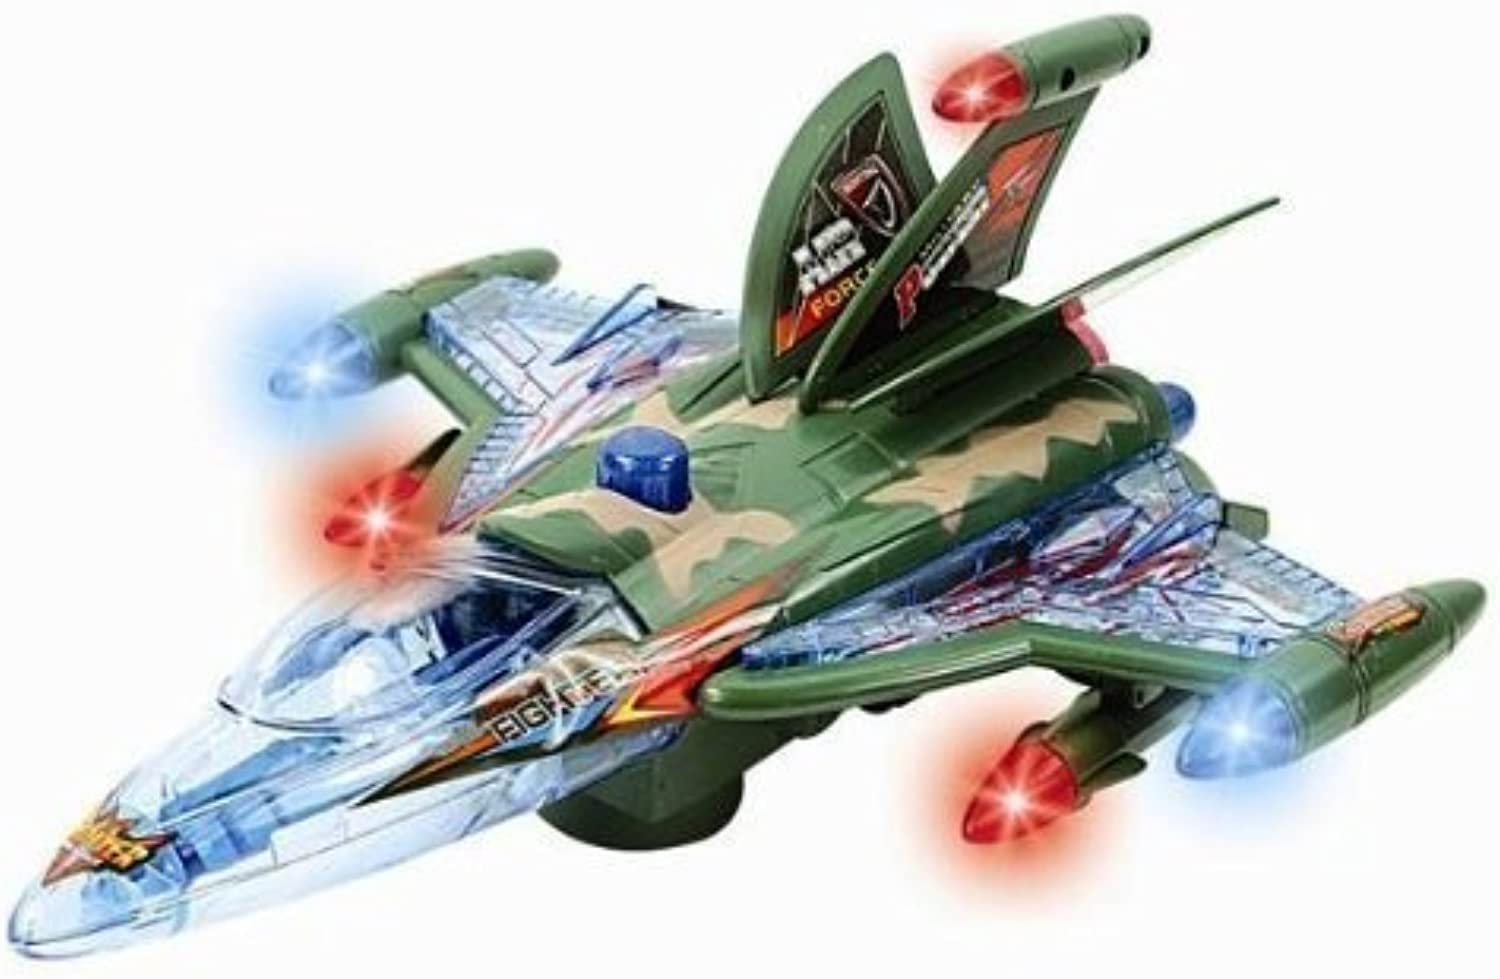 13 Toy Military Jet Fighter Plane with Lights and Sound by Master Toys